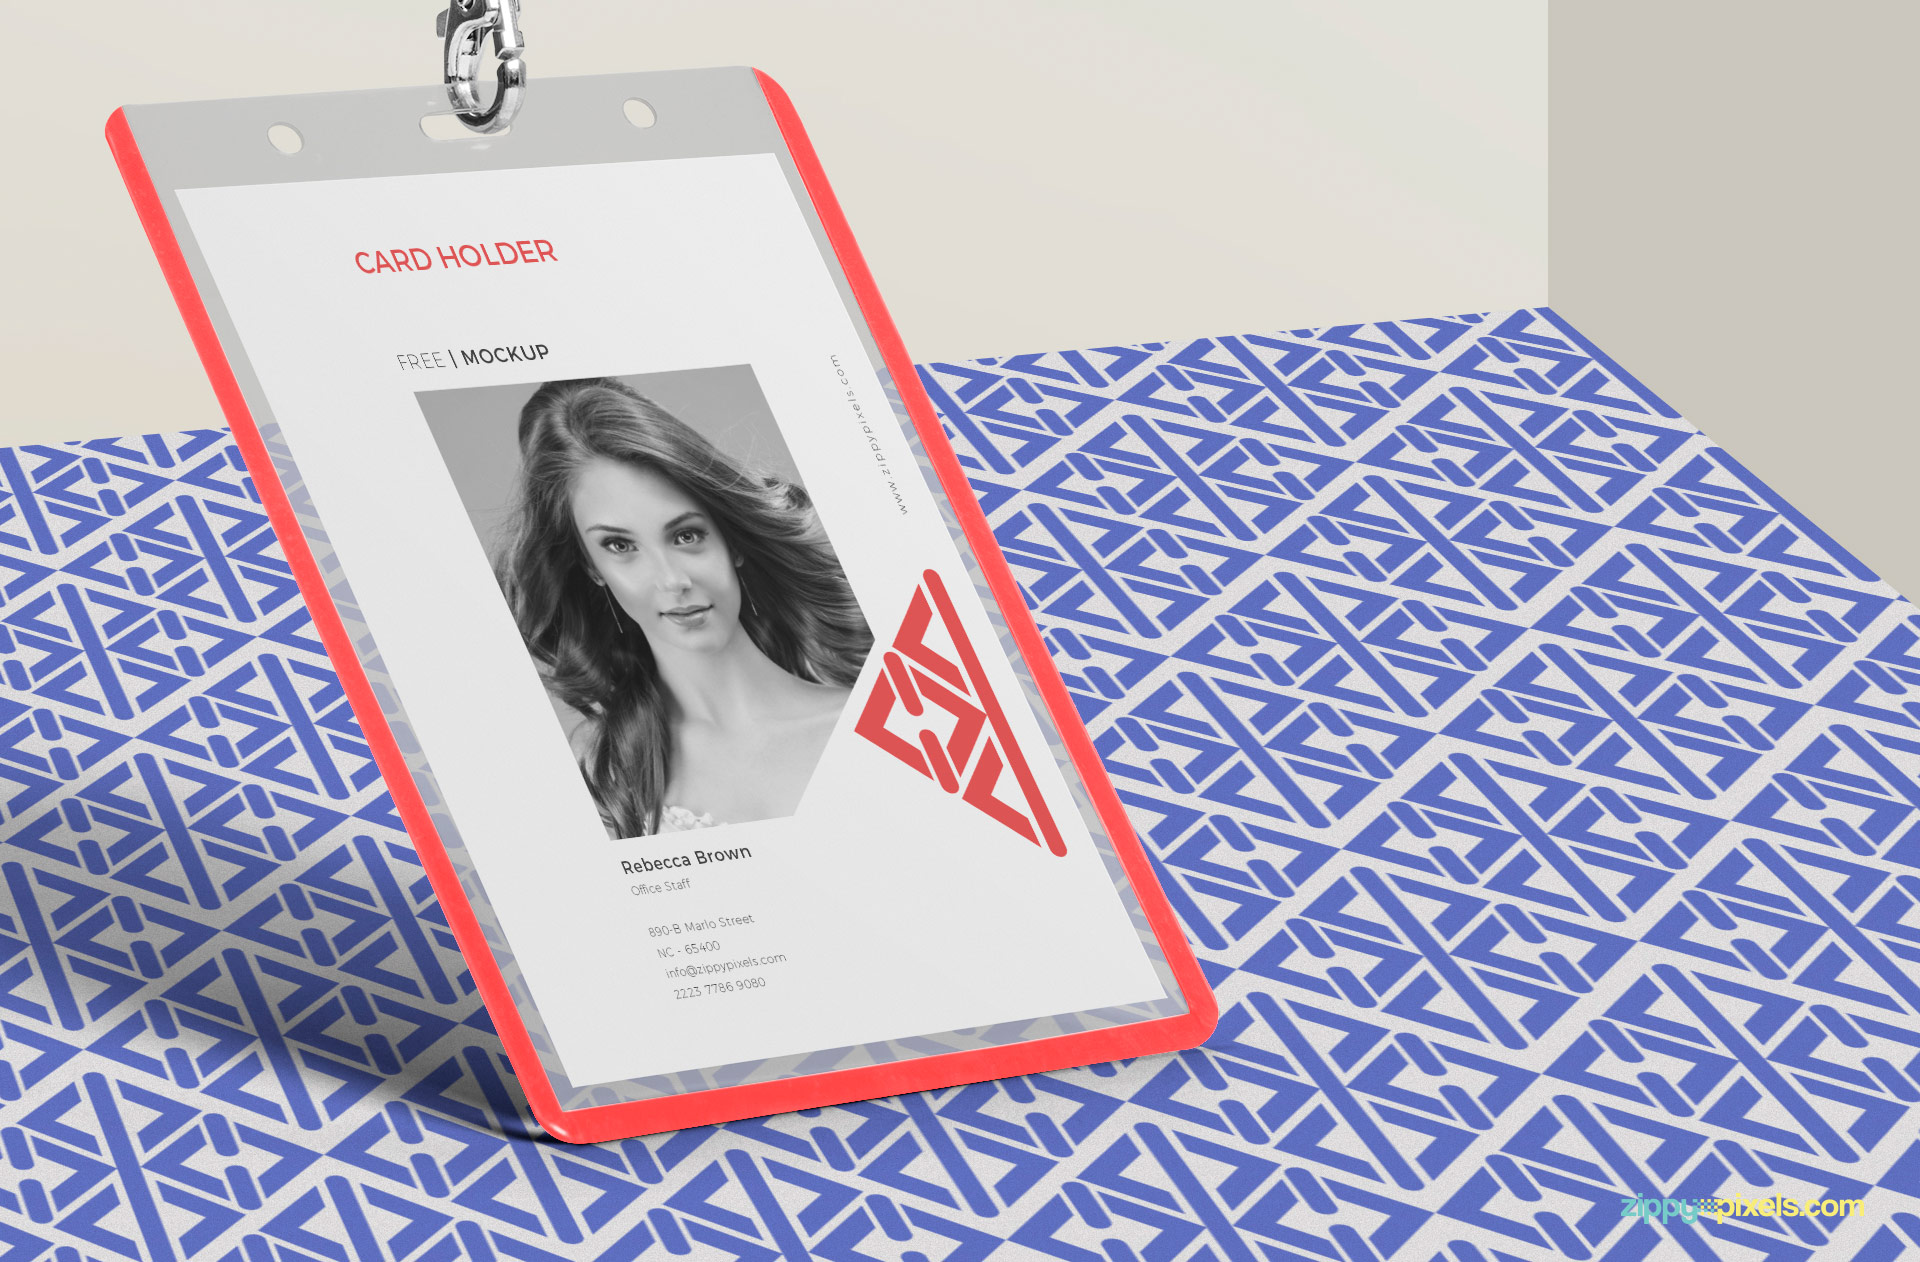 Change the design of the card with a single click using the smart object.